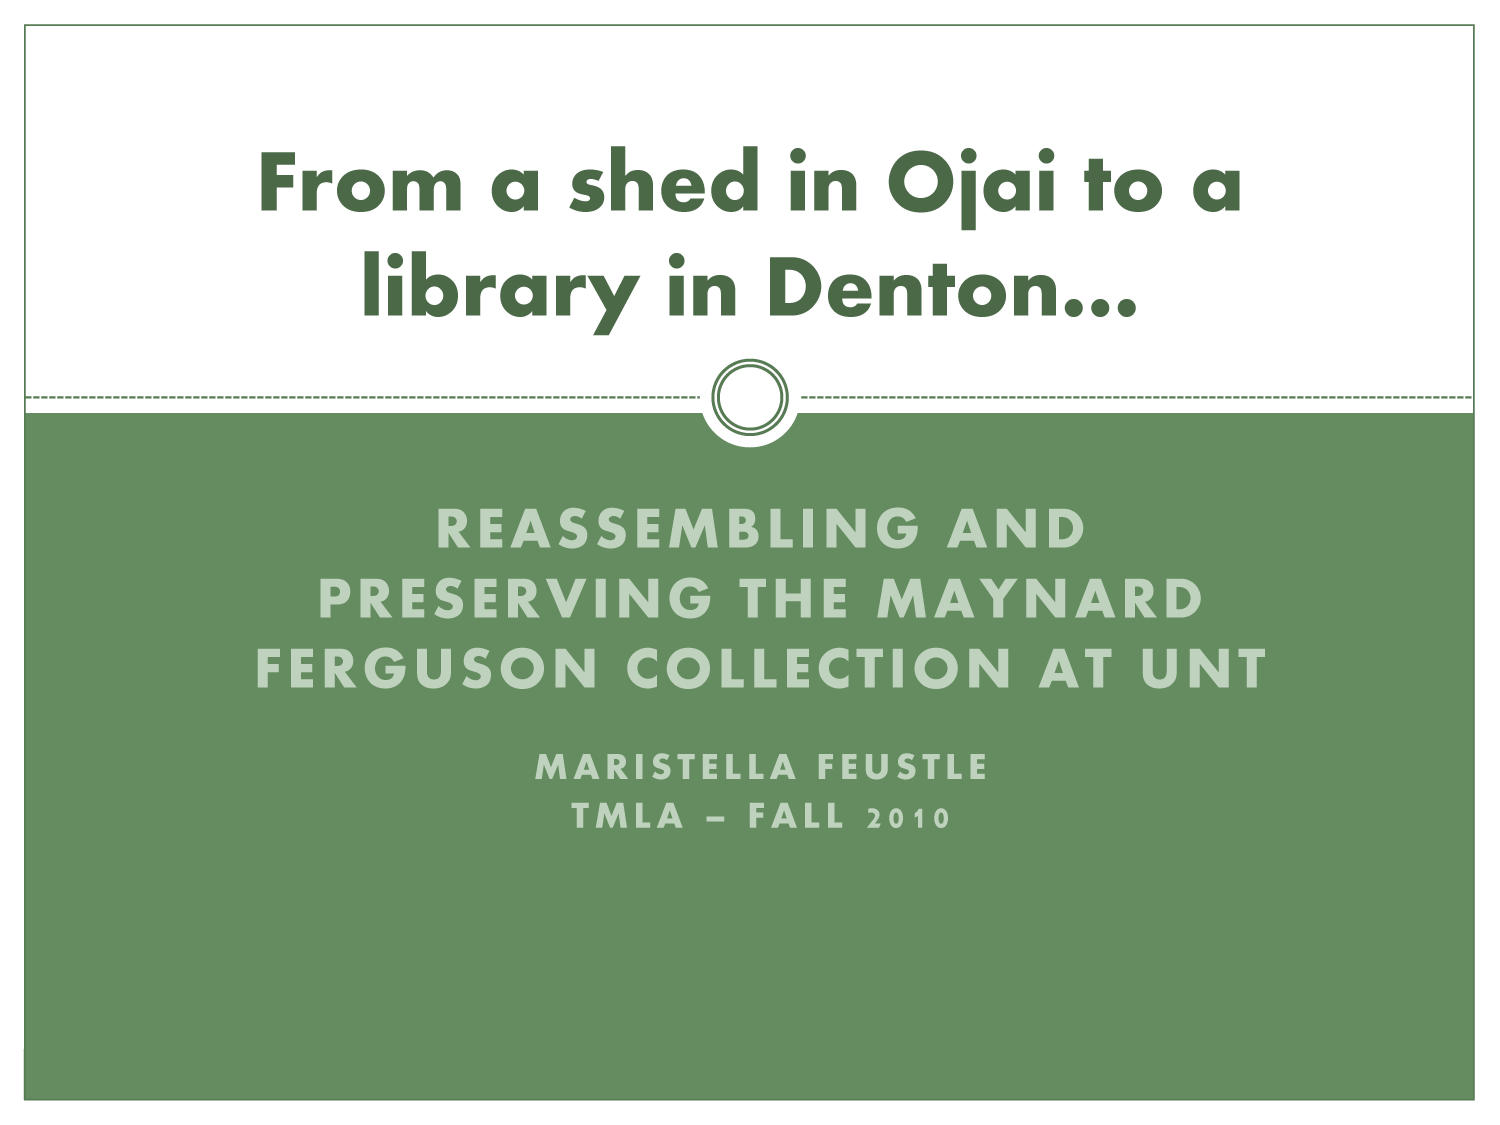 From a Shed in Ojai to a Library in Denton: Reassembling and Preserving the Maynard Ferguson Collection at UNT [Presentation]                                                                                                      [Sequence #]: 1 of 18